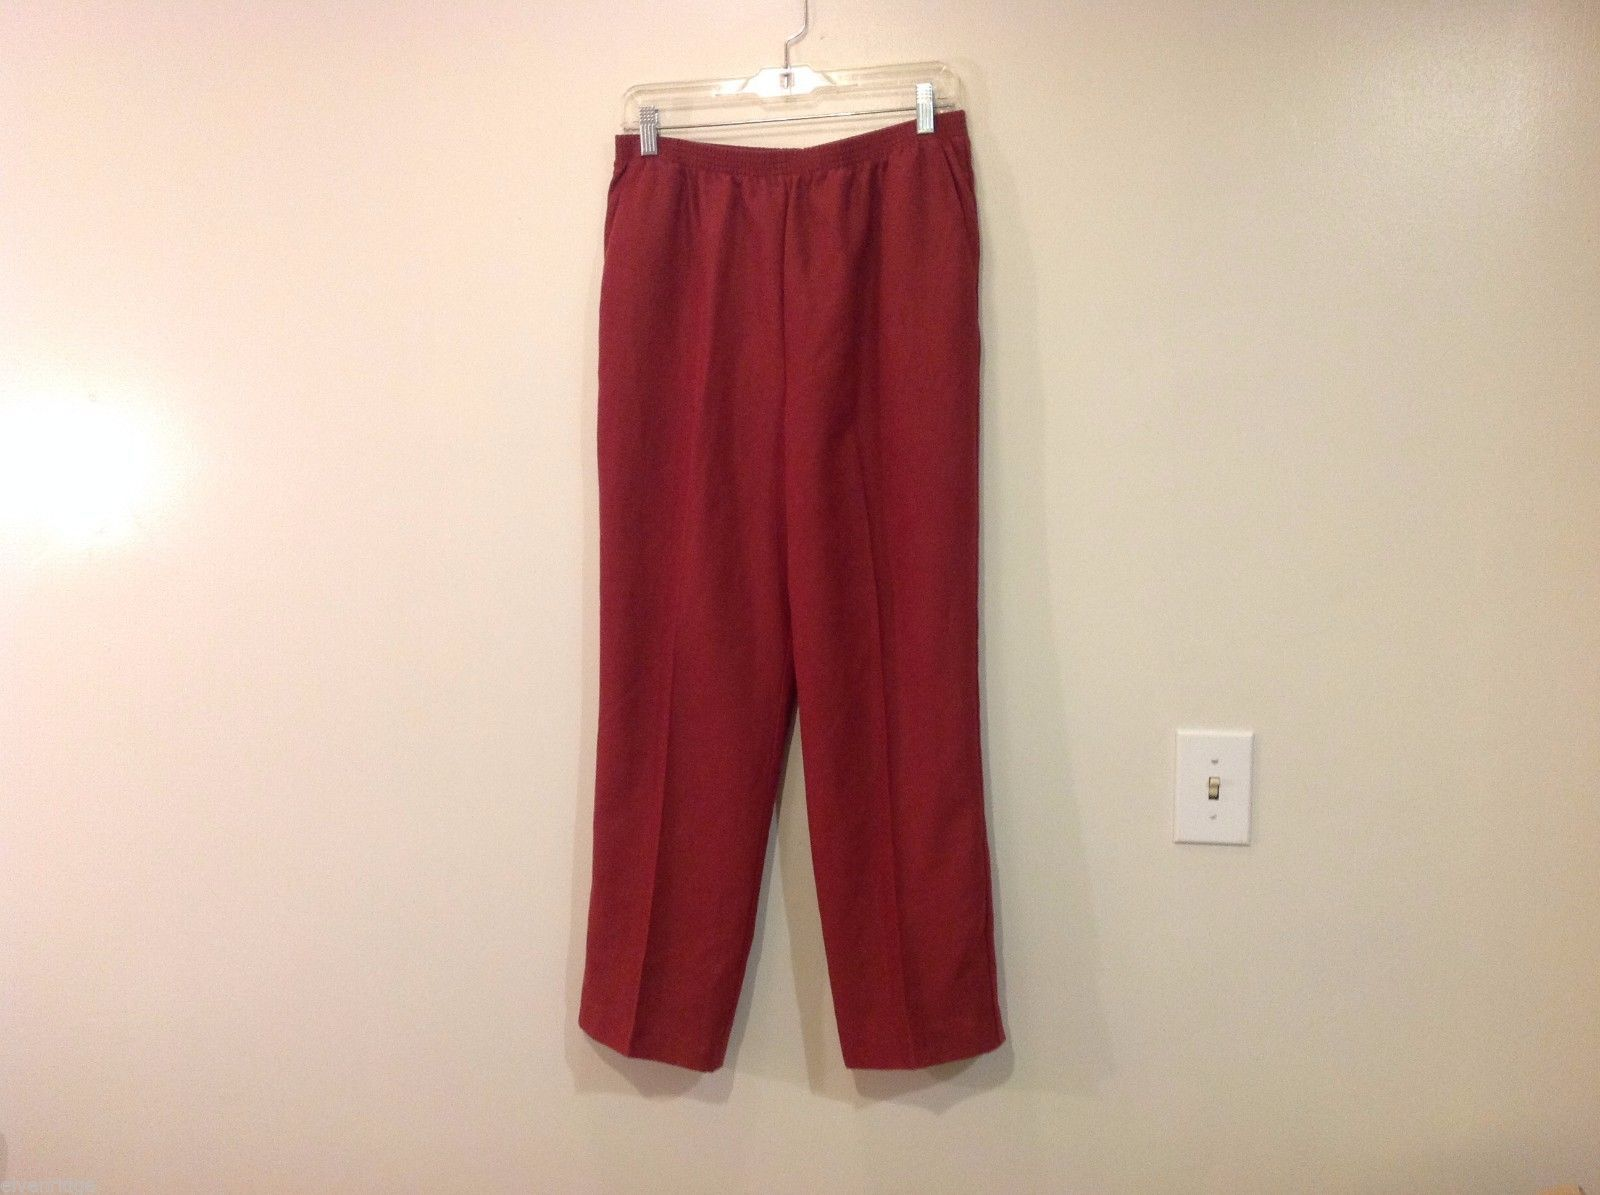 Alfred Dunner Brown/ Red Pants Size 14 Elastic Waist Polyester Microfiber Suede